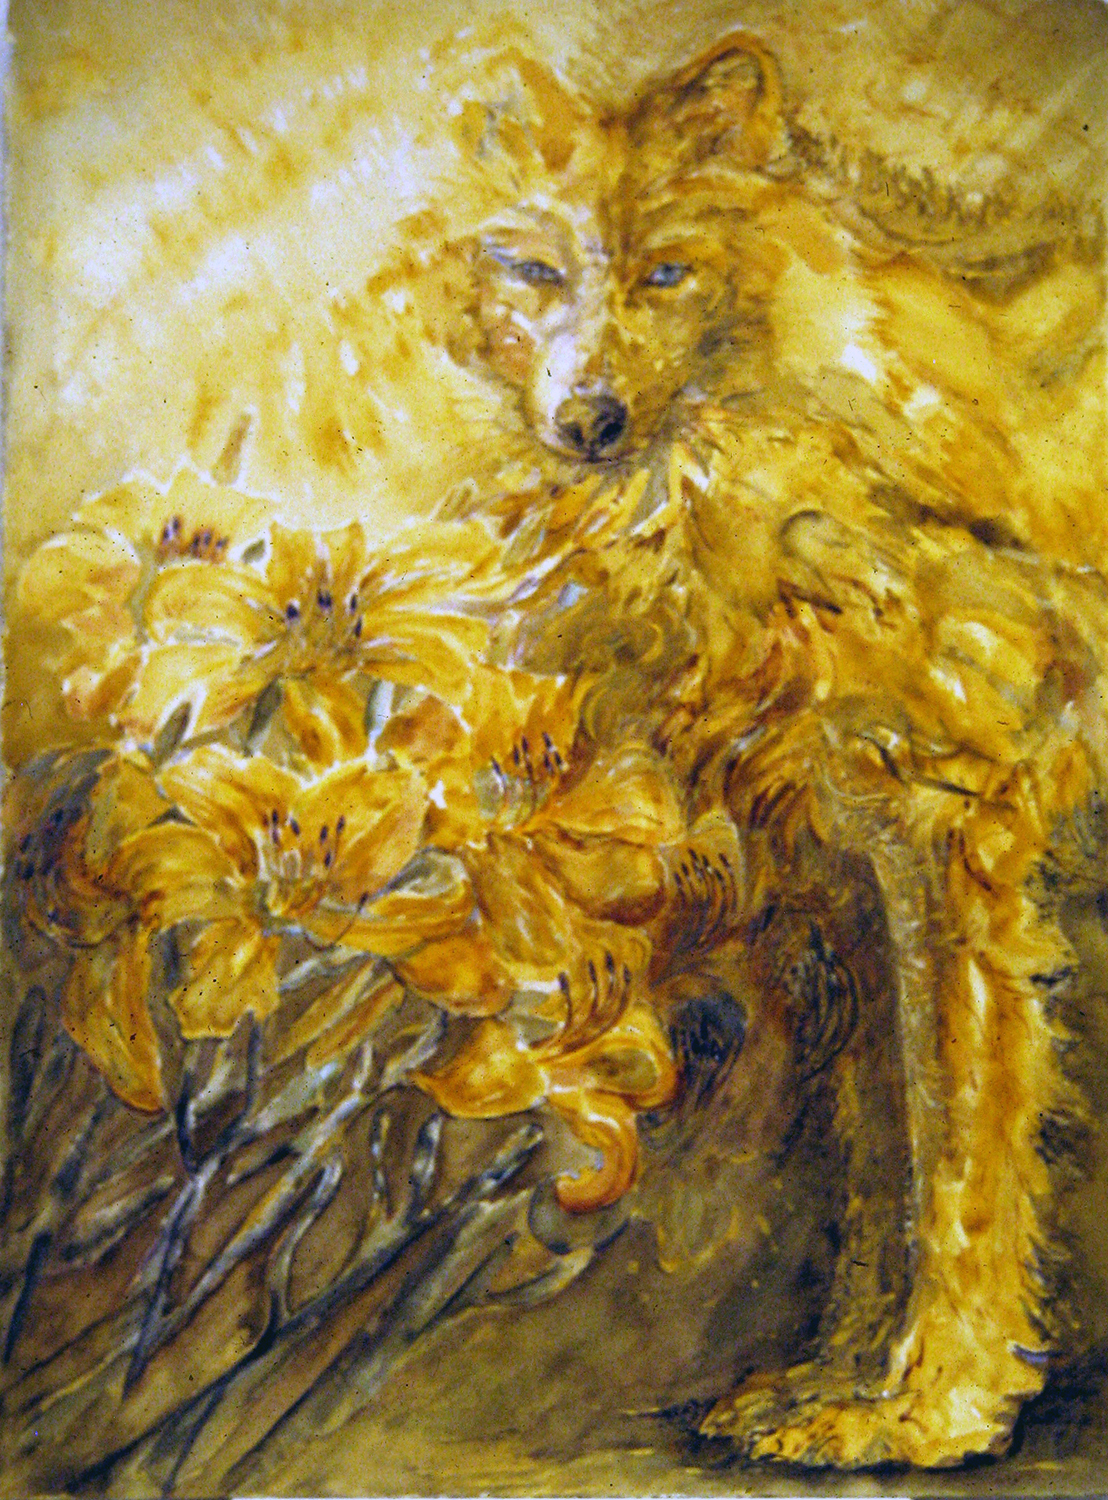 sun wolf 1995 watercolour 30x22